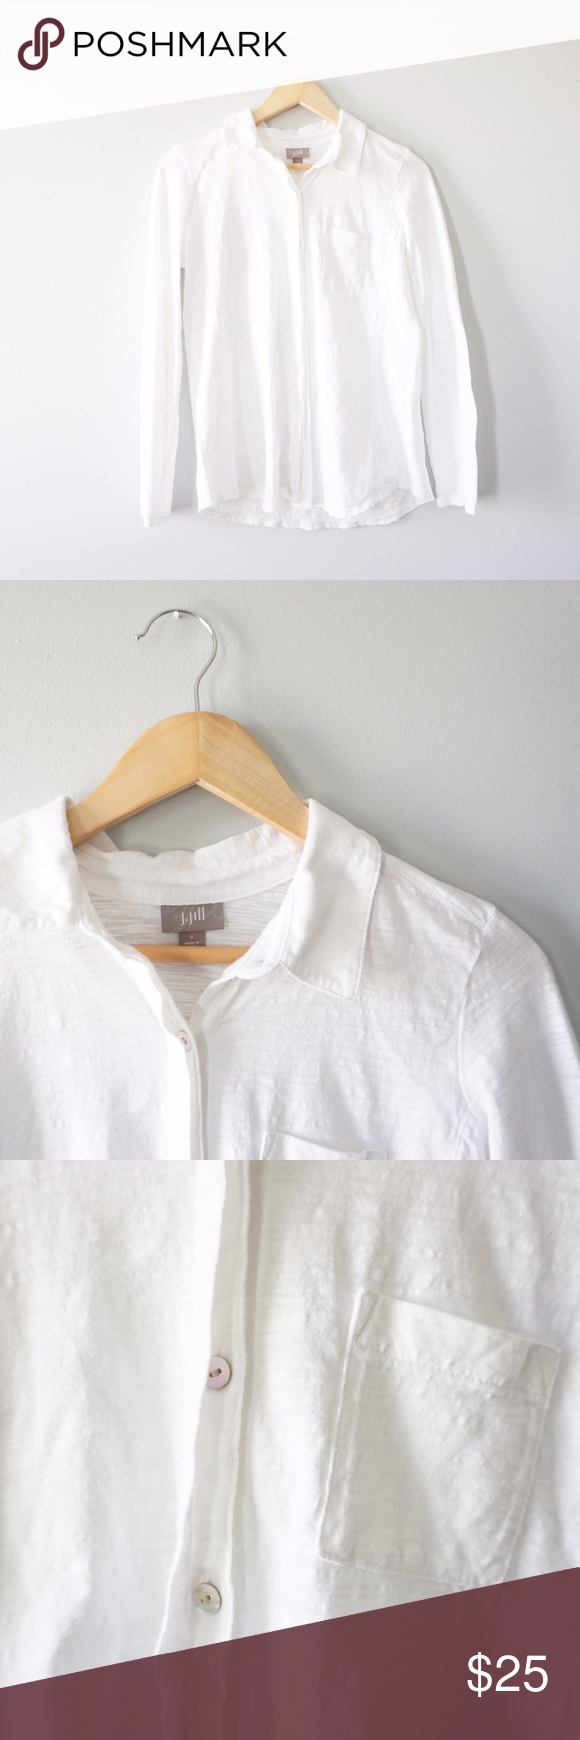 J.Jill Shell Button Buttondown J.Jill shell buttondown size small. Cotton, white. Lightweight and great for spring! In excellent condition with no stains rips or tears. J. Jill Tops Button Down Shirts